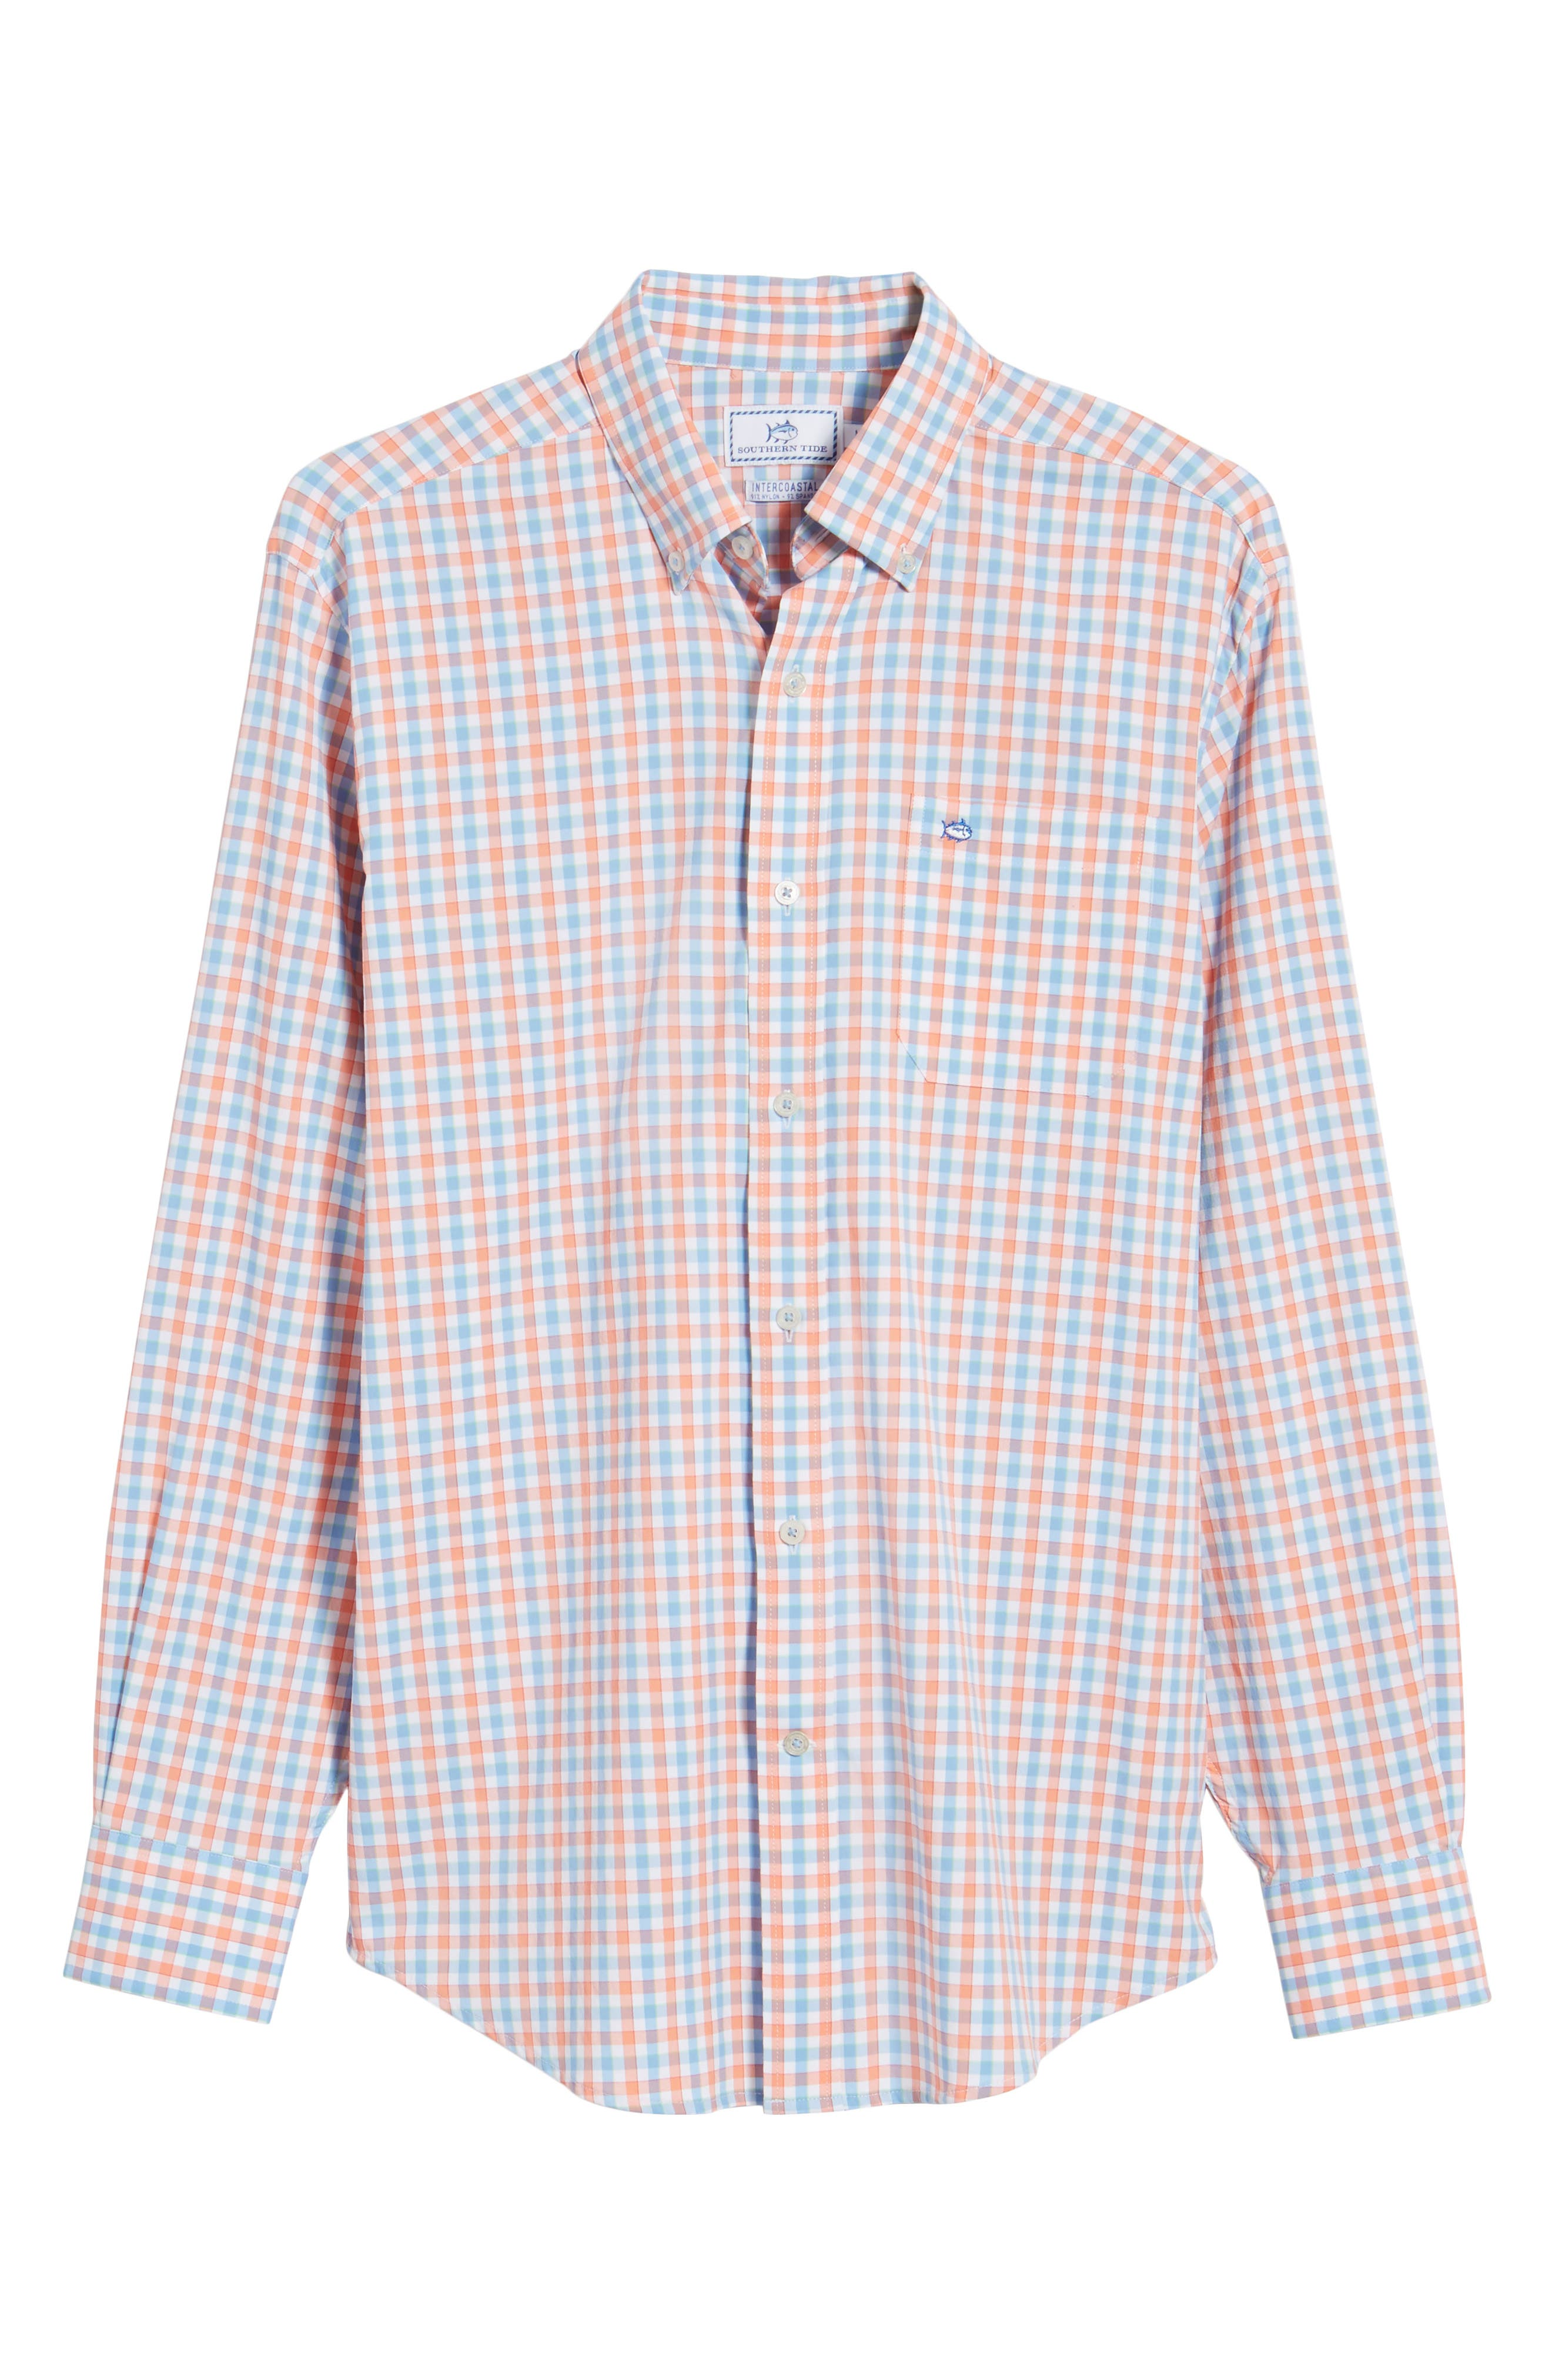 Market Square Regular Fit Stretch Check Sport Shirt,                             Alternate thumbnail 6, color,                             Nectar Coral